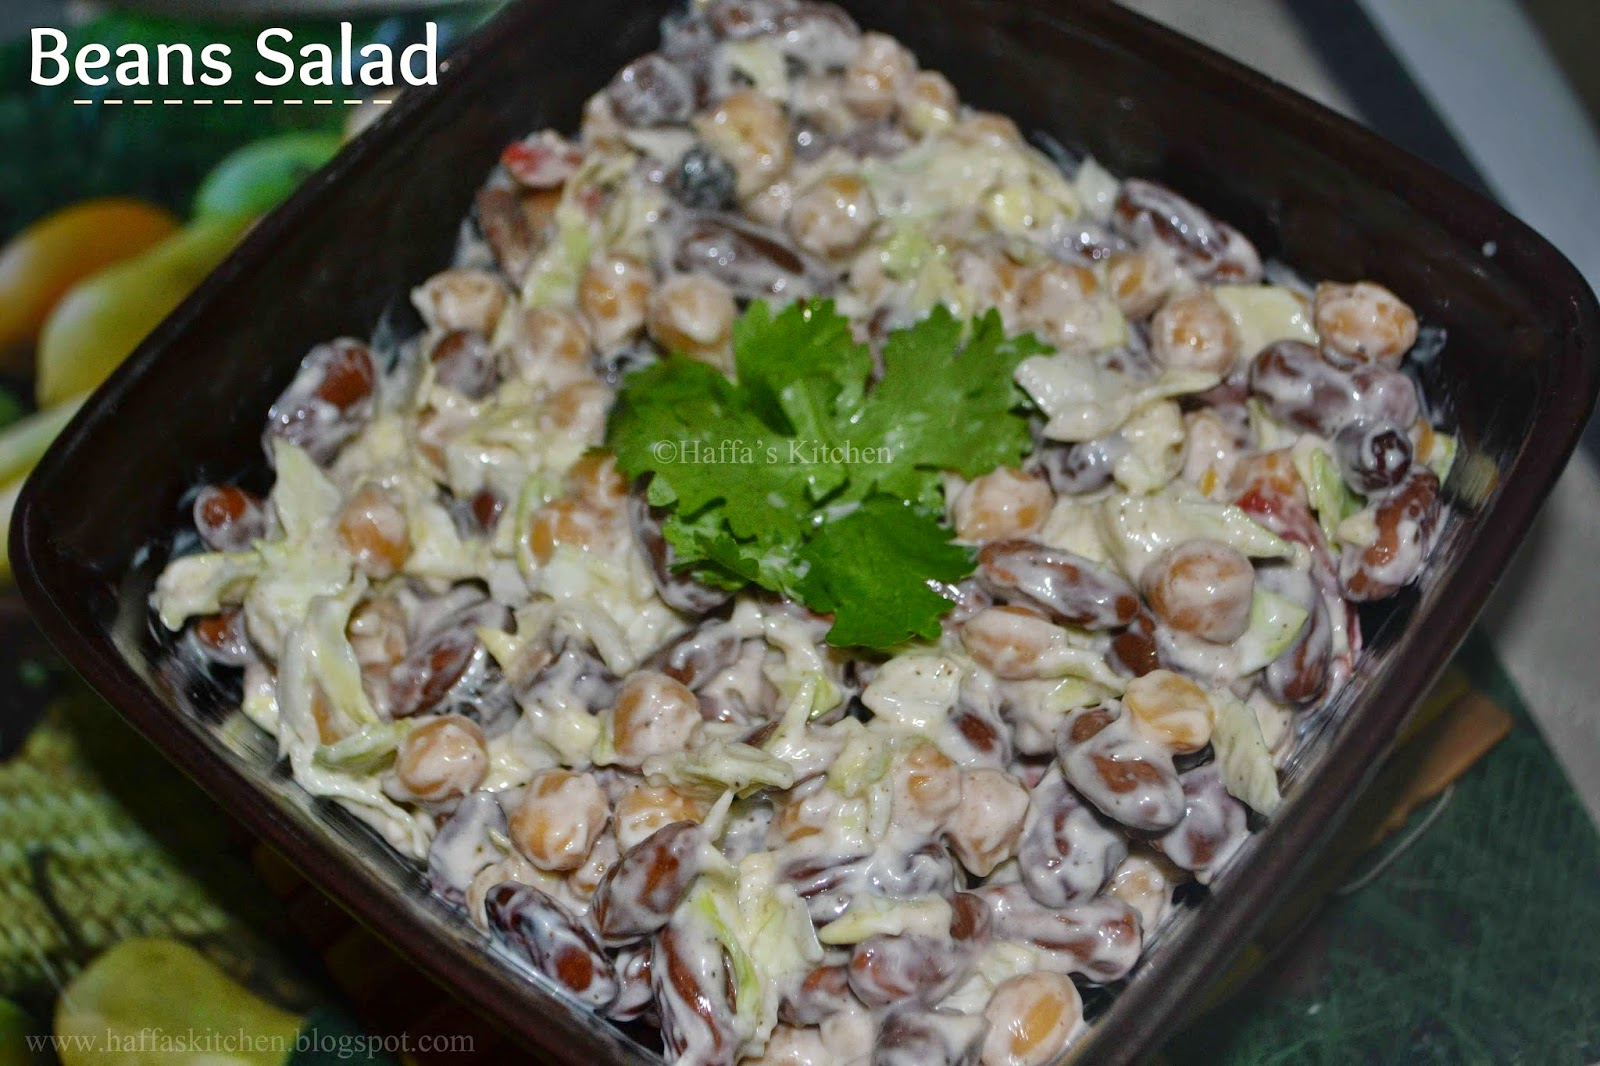 Red beans salad, Beans salads recipes, kidney bean salad, bean salad recipe